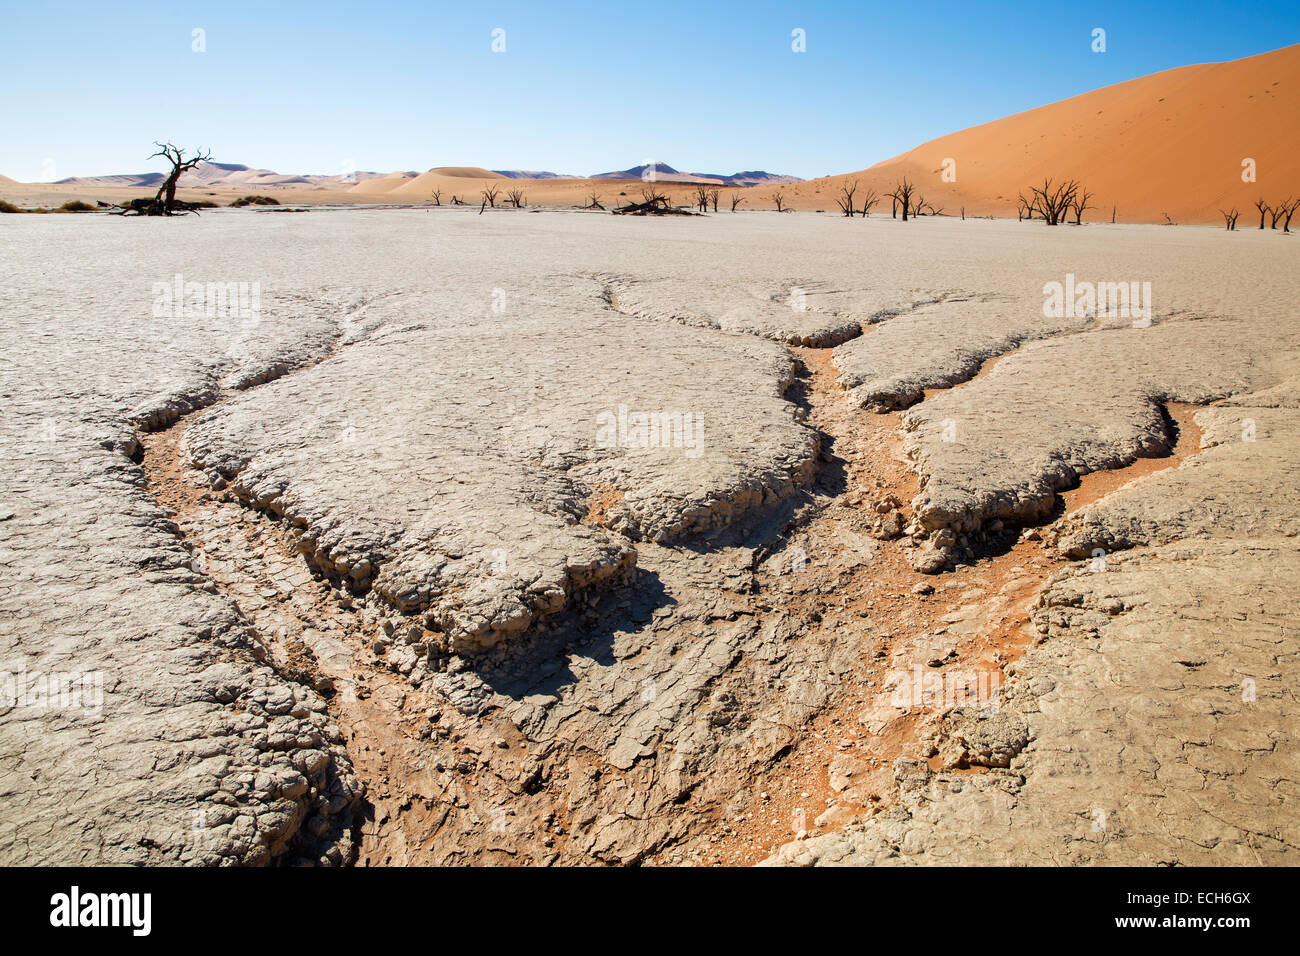 Parched earth and dead trees, Deadvlei, Sossusvlei, Namibia - Stock Image